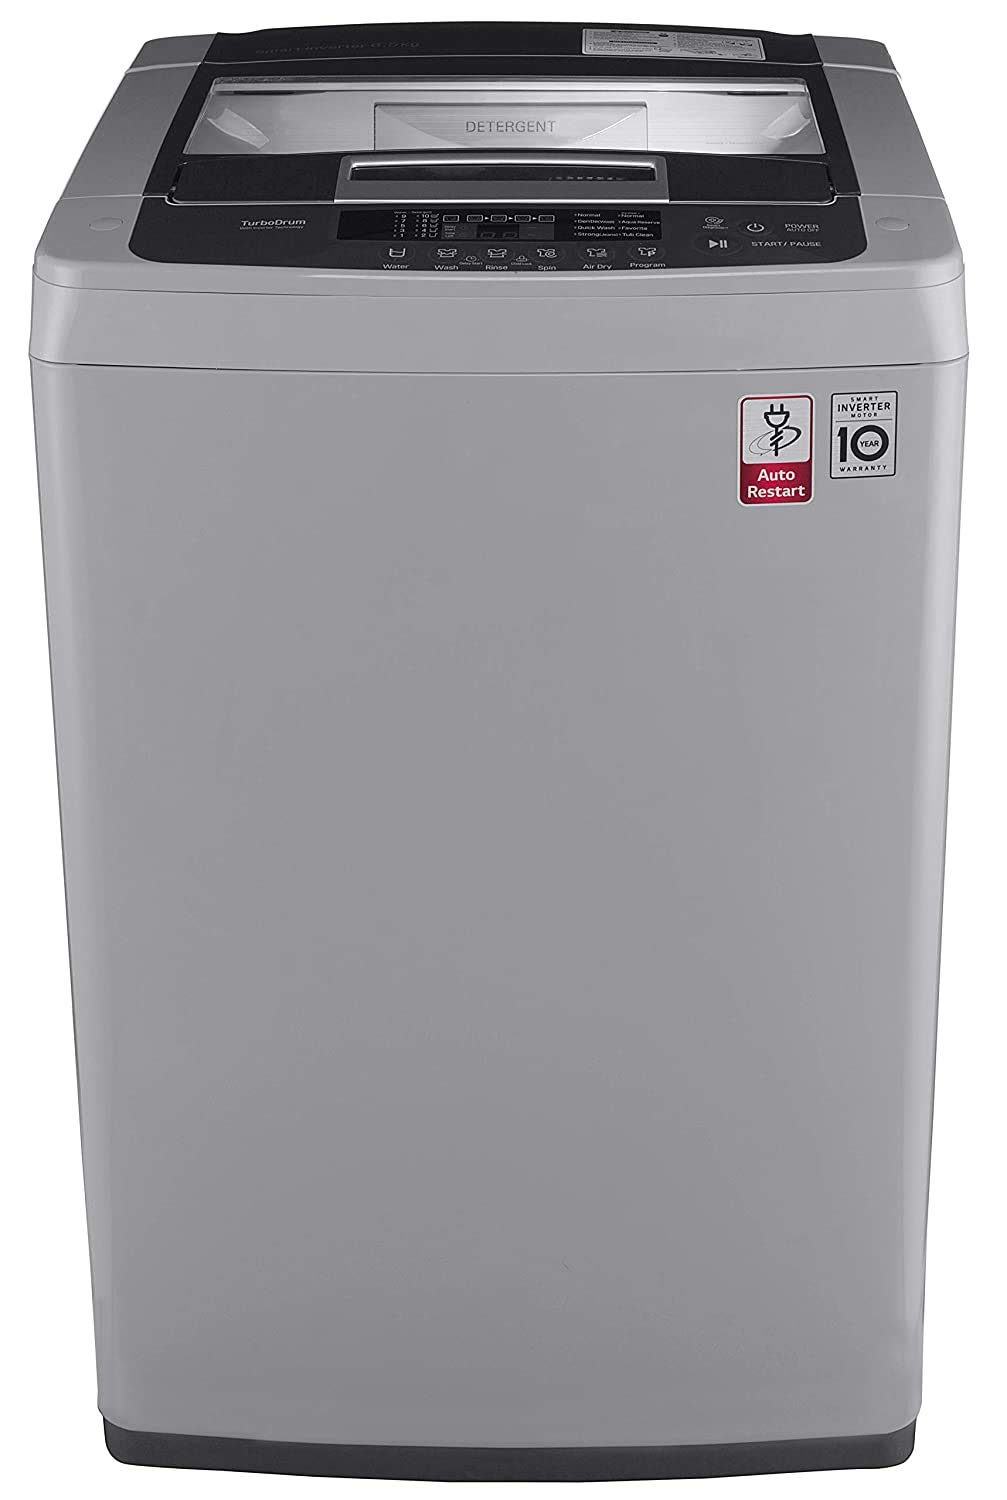 LG 6.5 KG Inverter  Fully Automatic Top Load Washing Machine